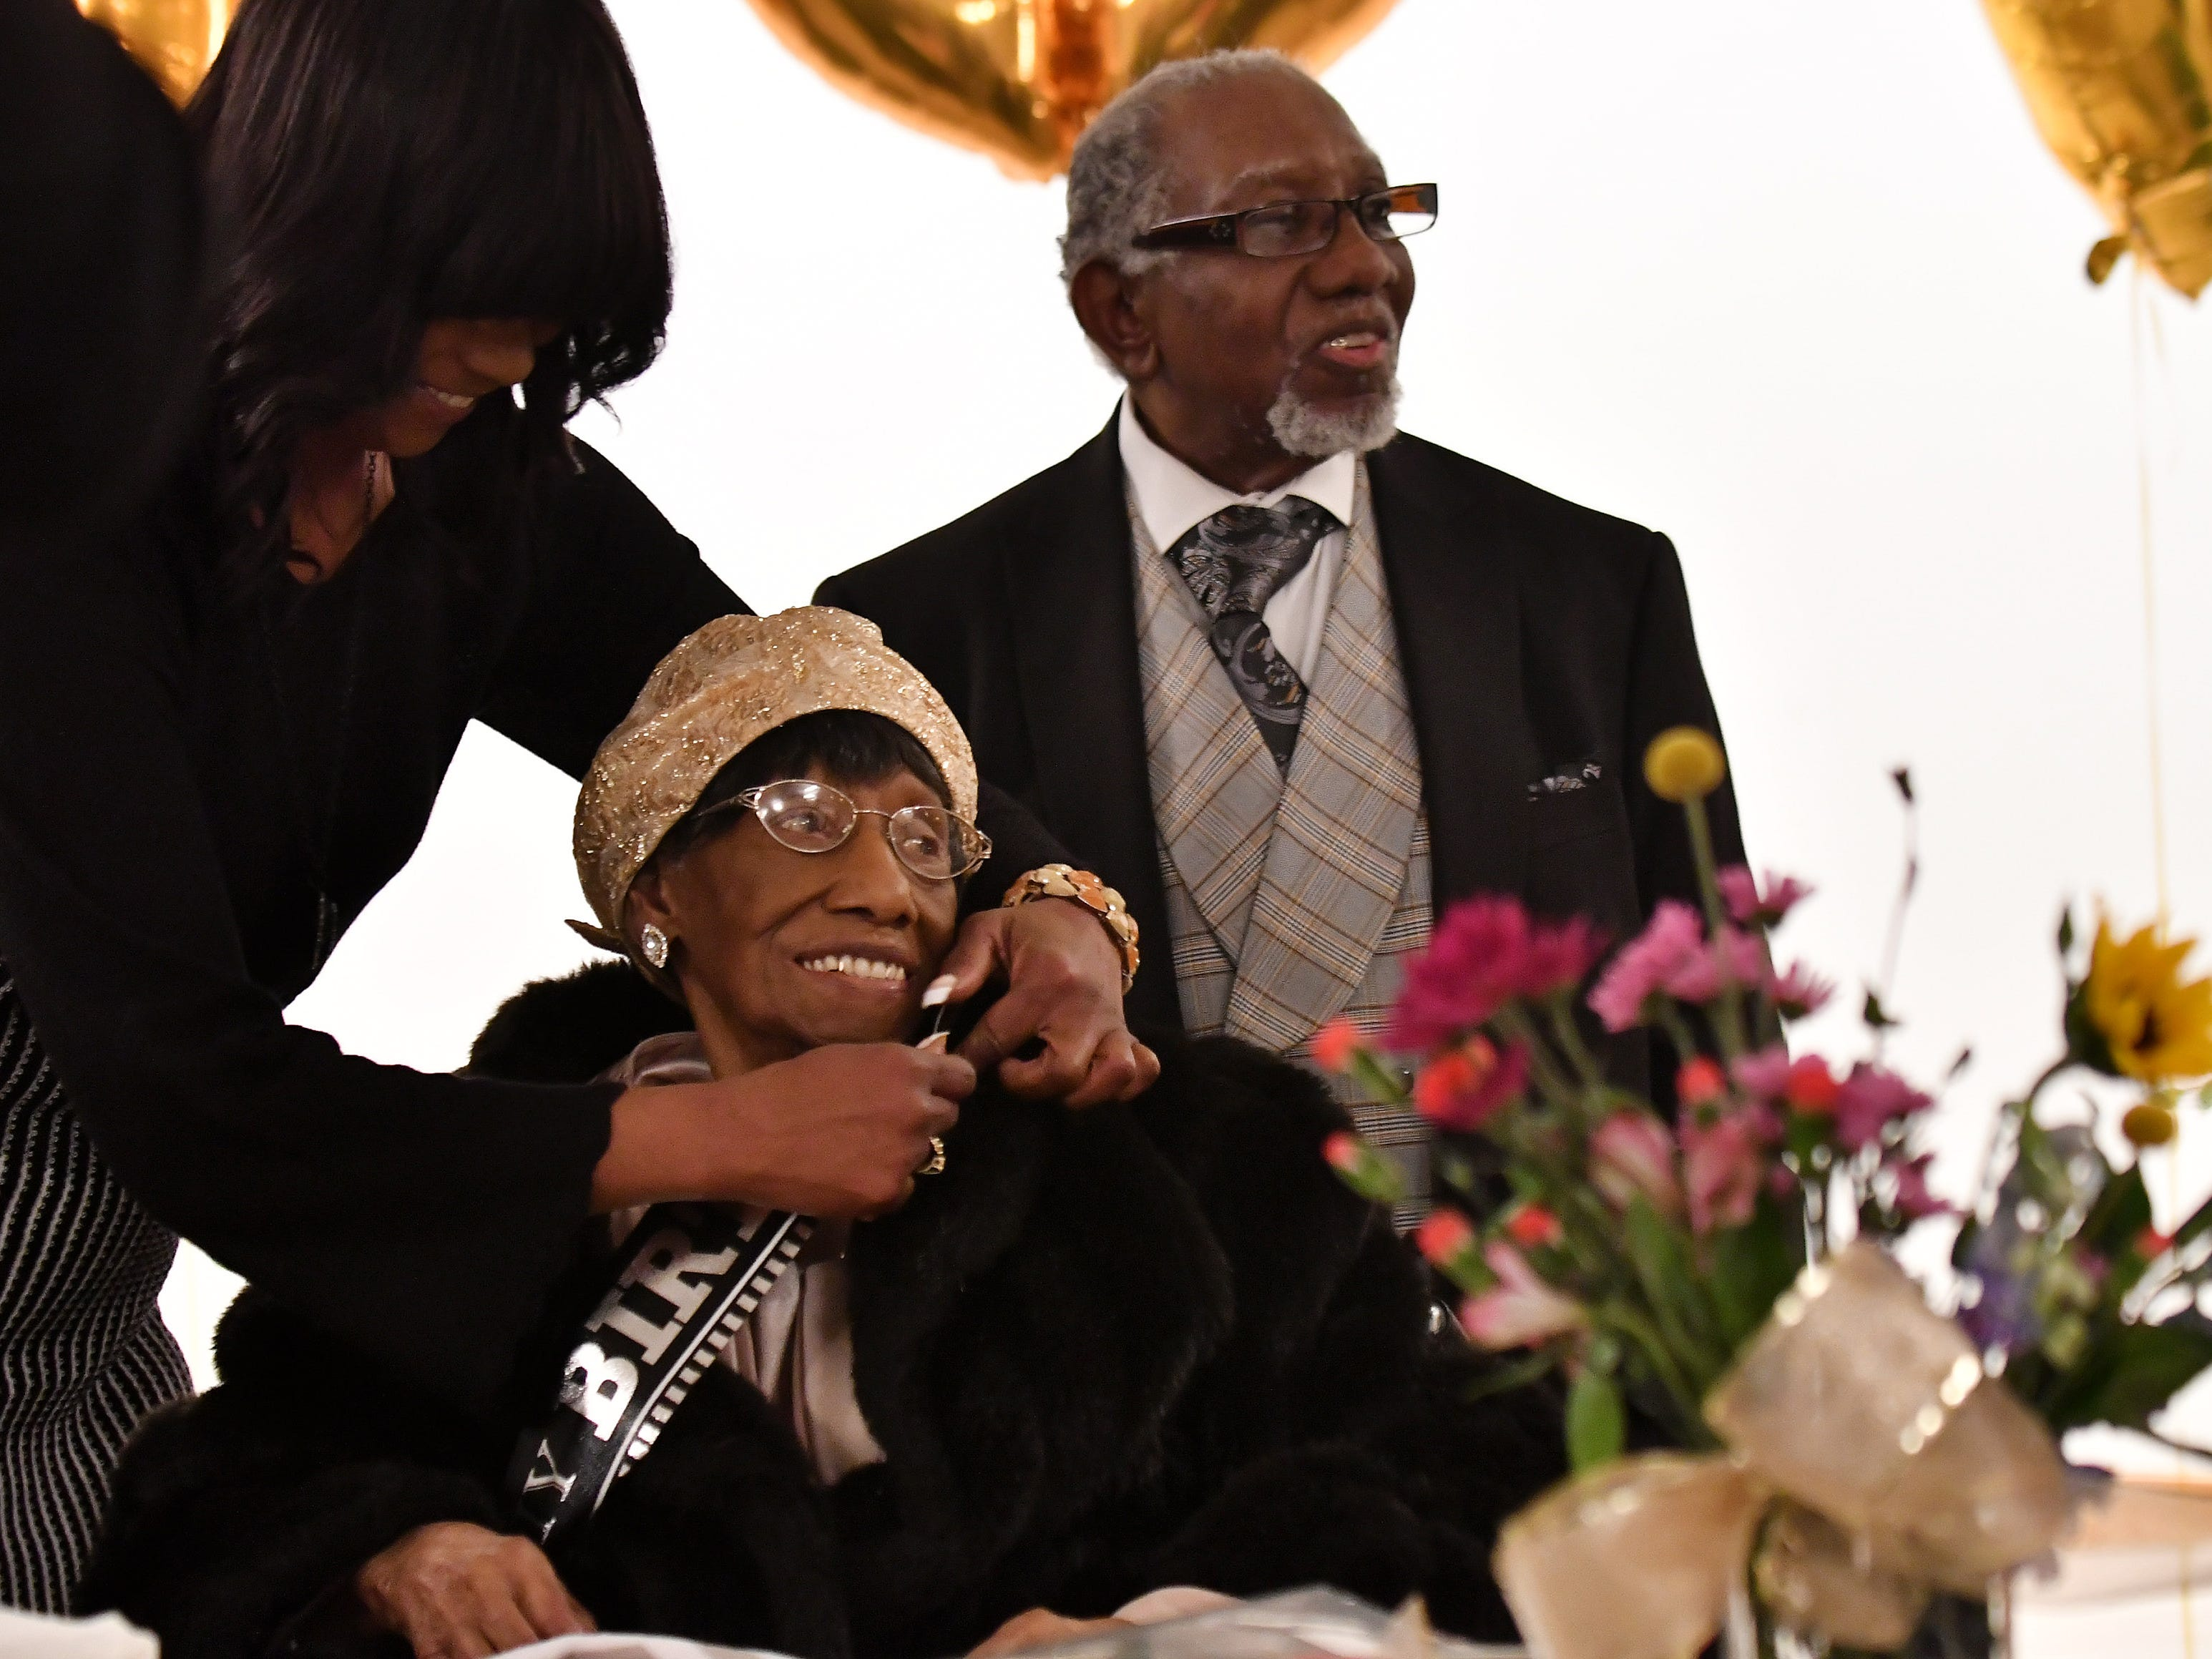 Michelle Williams puts a birthday sash on her grandmother, Lois Holden, 109, at the birthday celebration.